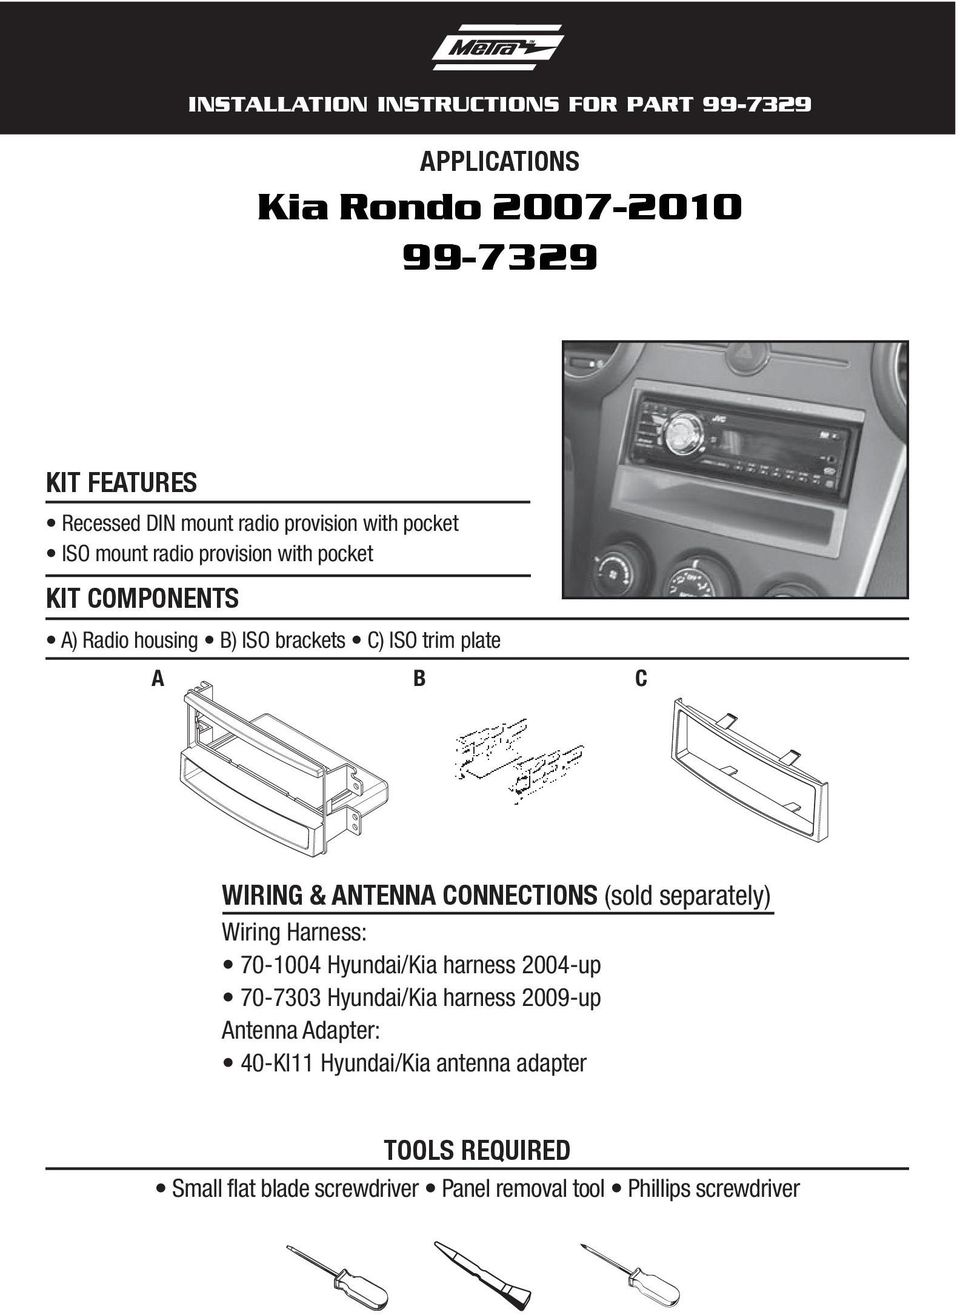 ANTENNA CONNECTIONS (sold separately) Wiring Harness: 70-1004 Hyundai/Kia harness 2004-up 70-7303 Hyundai/Kia harness 2009-up